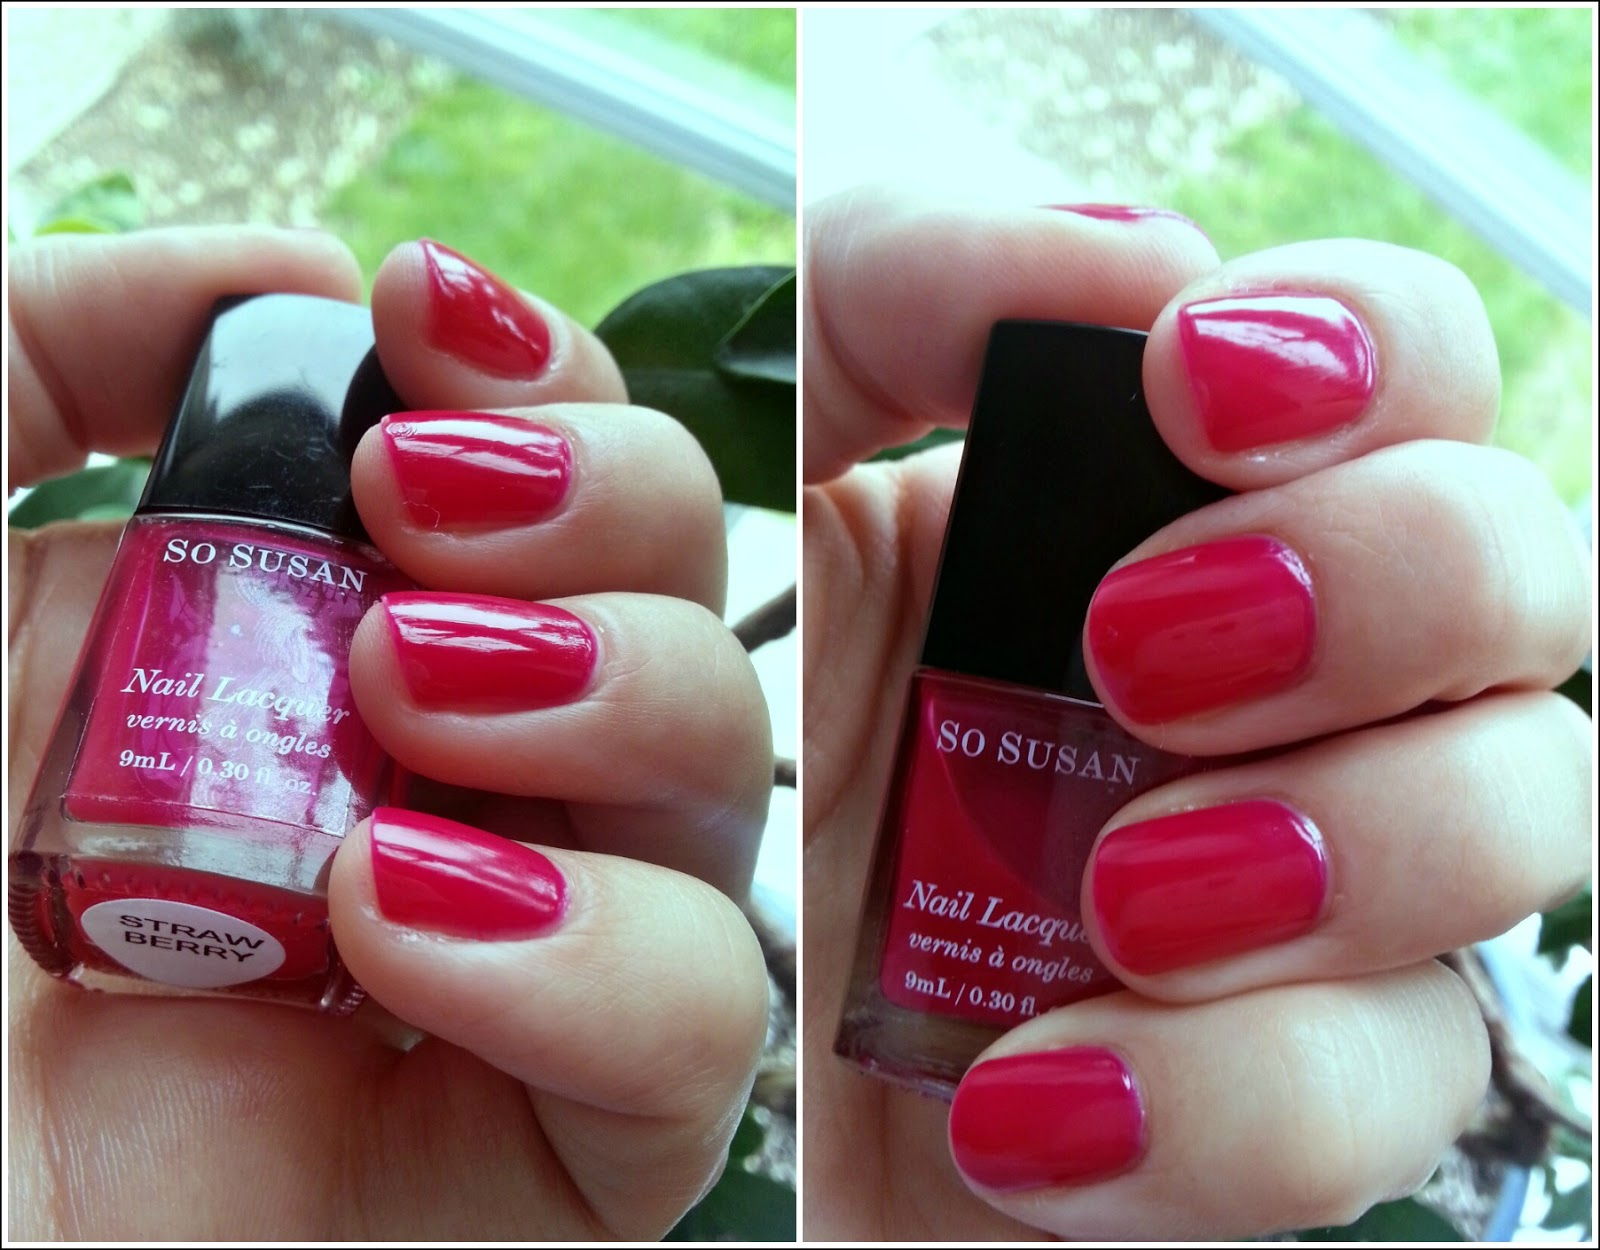 So susan nail lacquer in strawberry